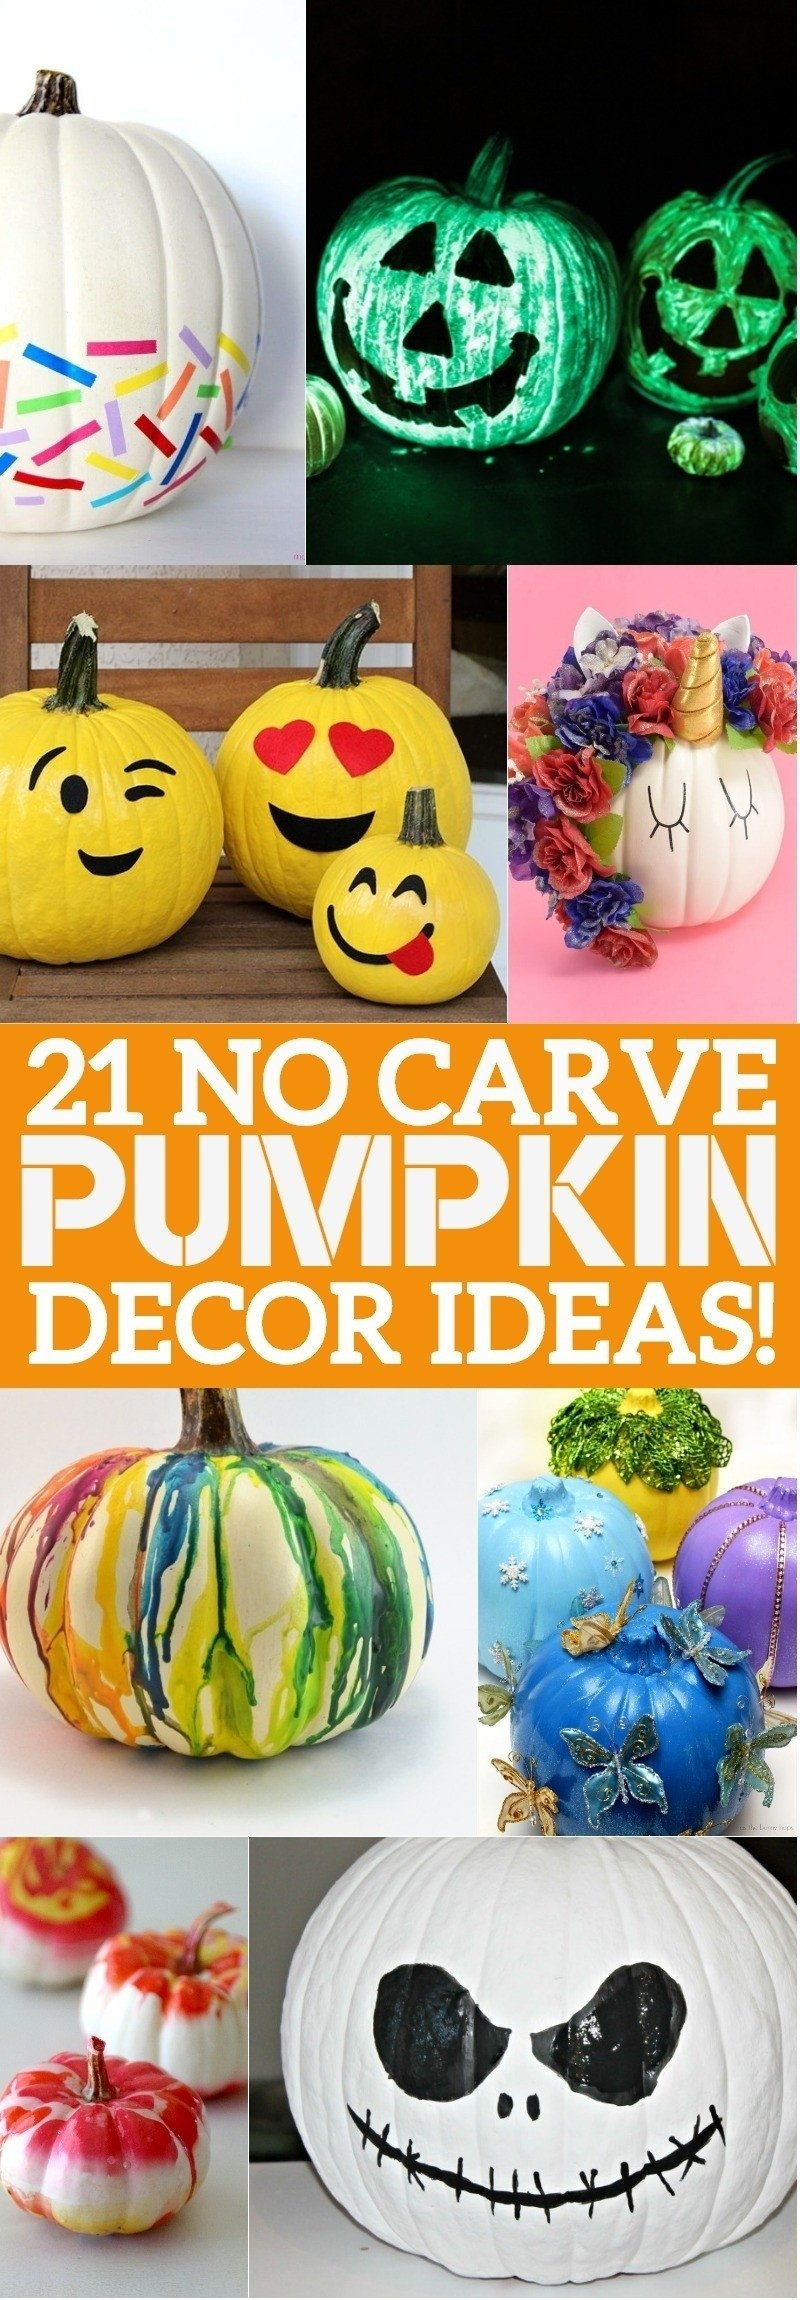 10 Famous No Carve Pumpkin Decorating Ideas 21 no carve pumpkin decorating ideas that youll love this halloween